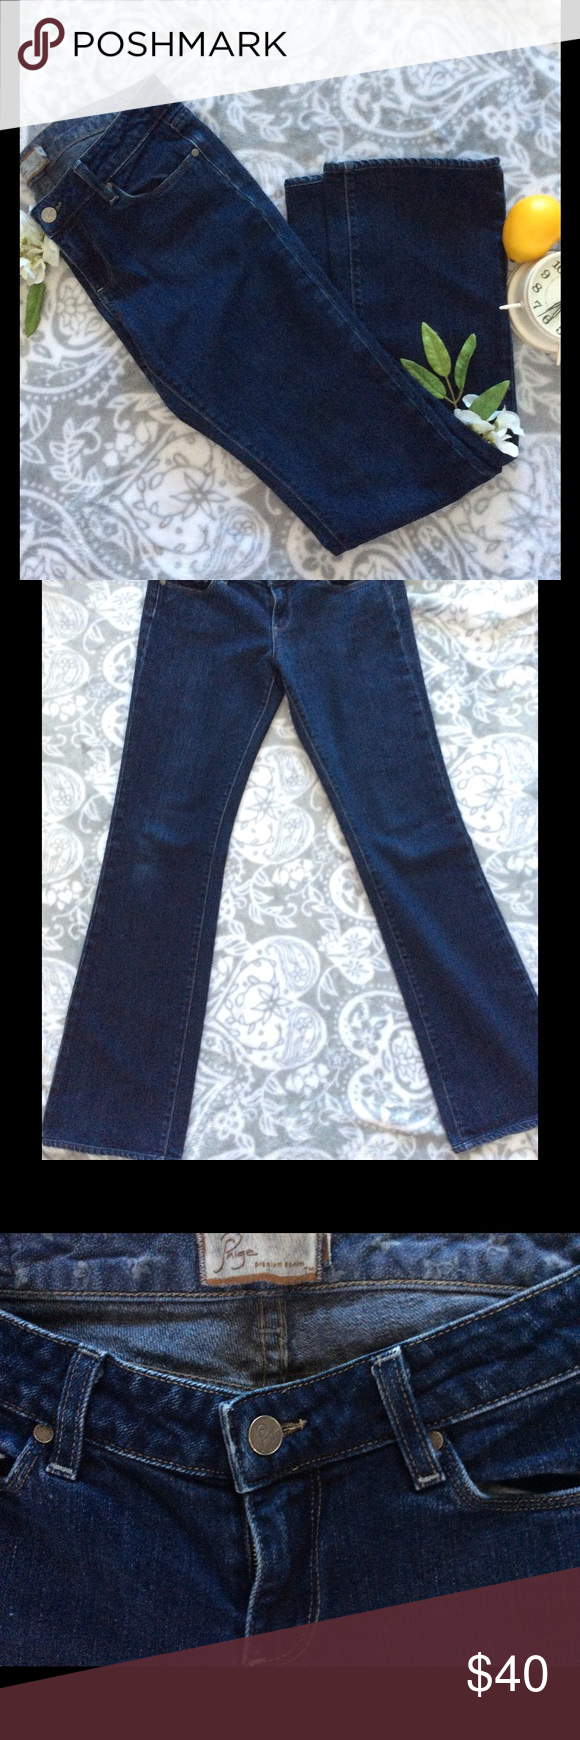 😍Paige Benedict Canyon Jeans Paige Benedict Canyon classic boot cut jeans. Excellent condition. 30 inch inseam. Paige Jeans Jeans Boot Cut